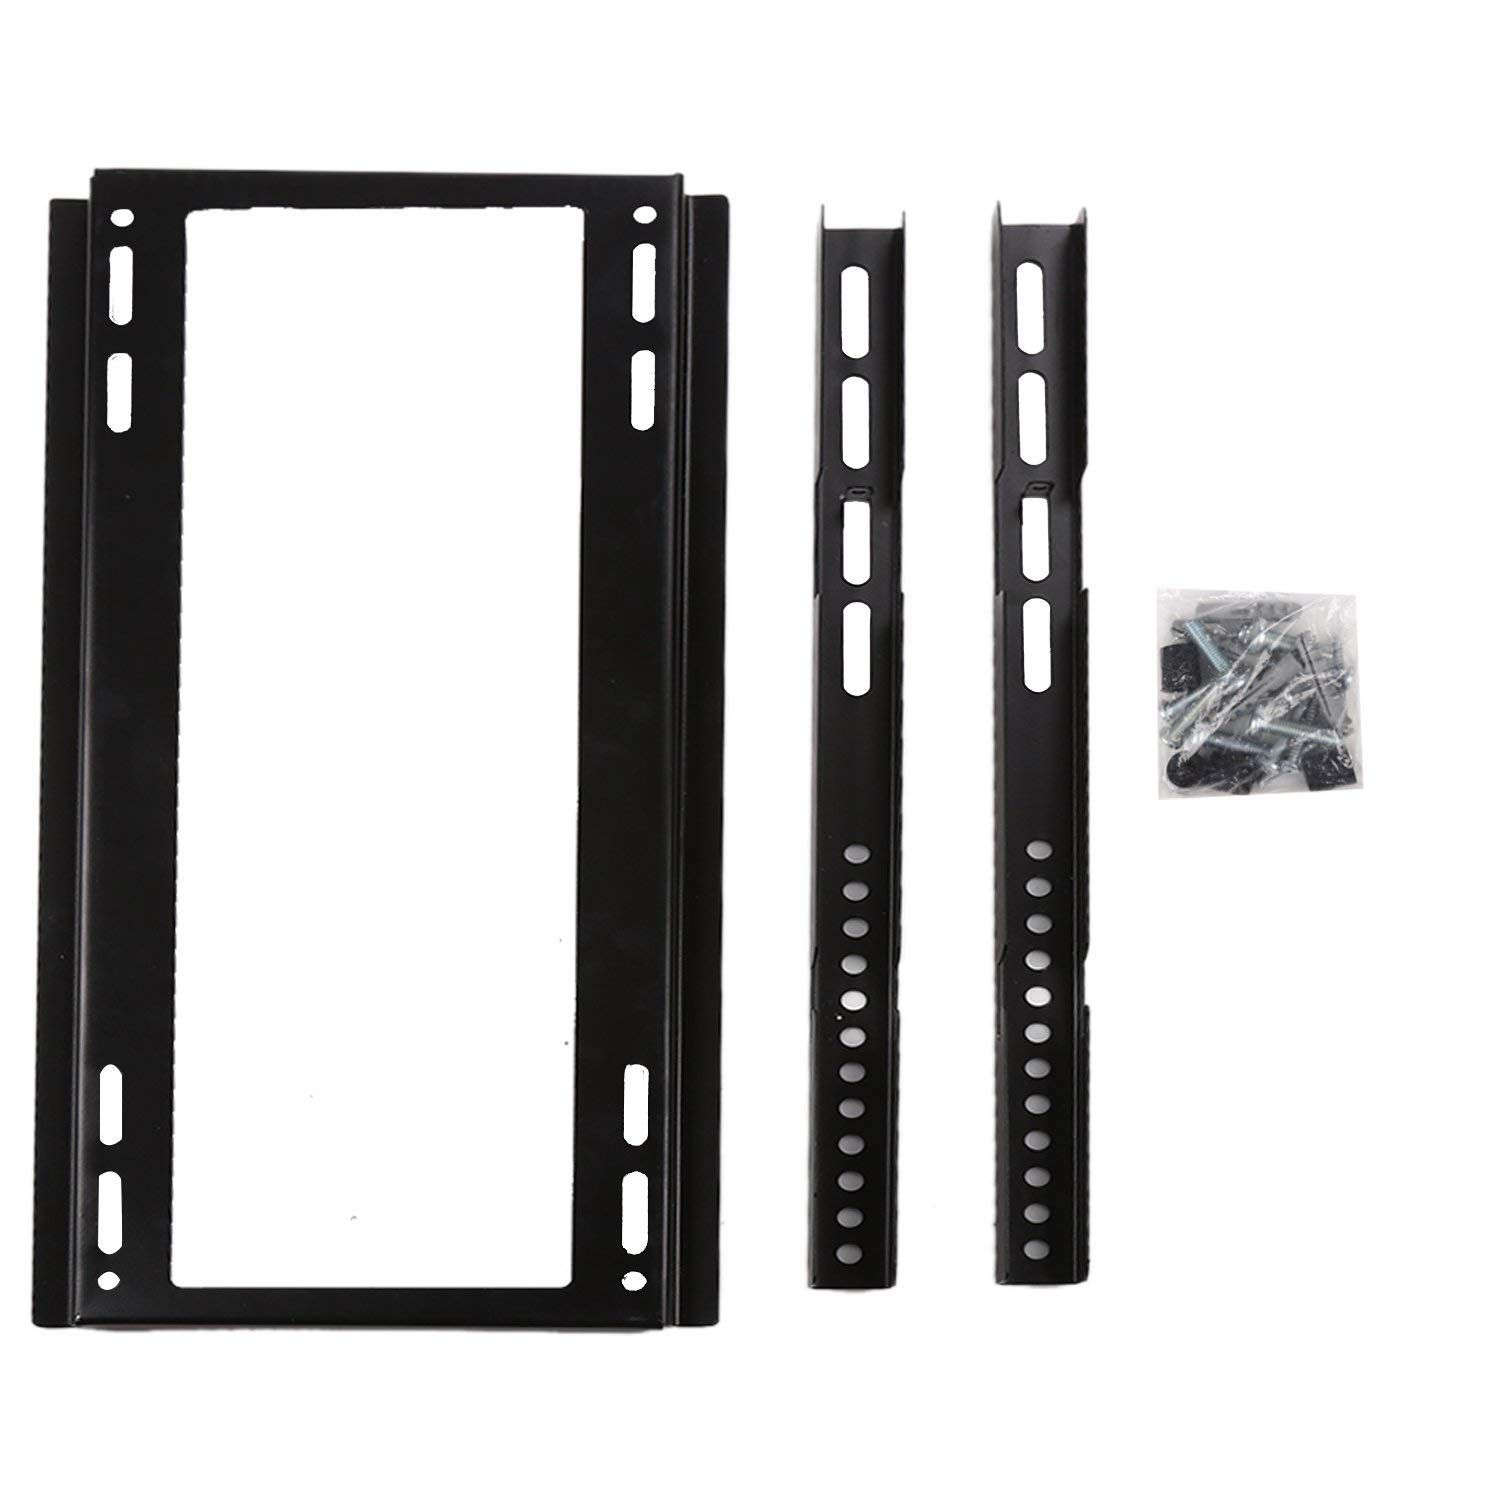 LG Maxi Universal Wall Mount Stand For 26 inch To 55 inch Samsung LG